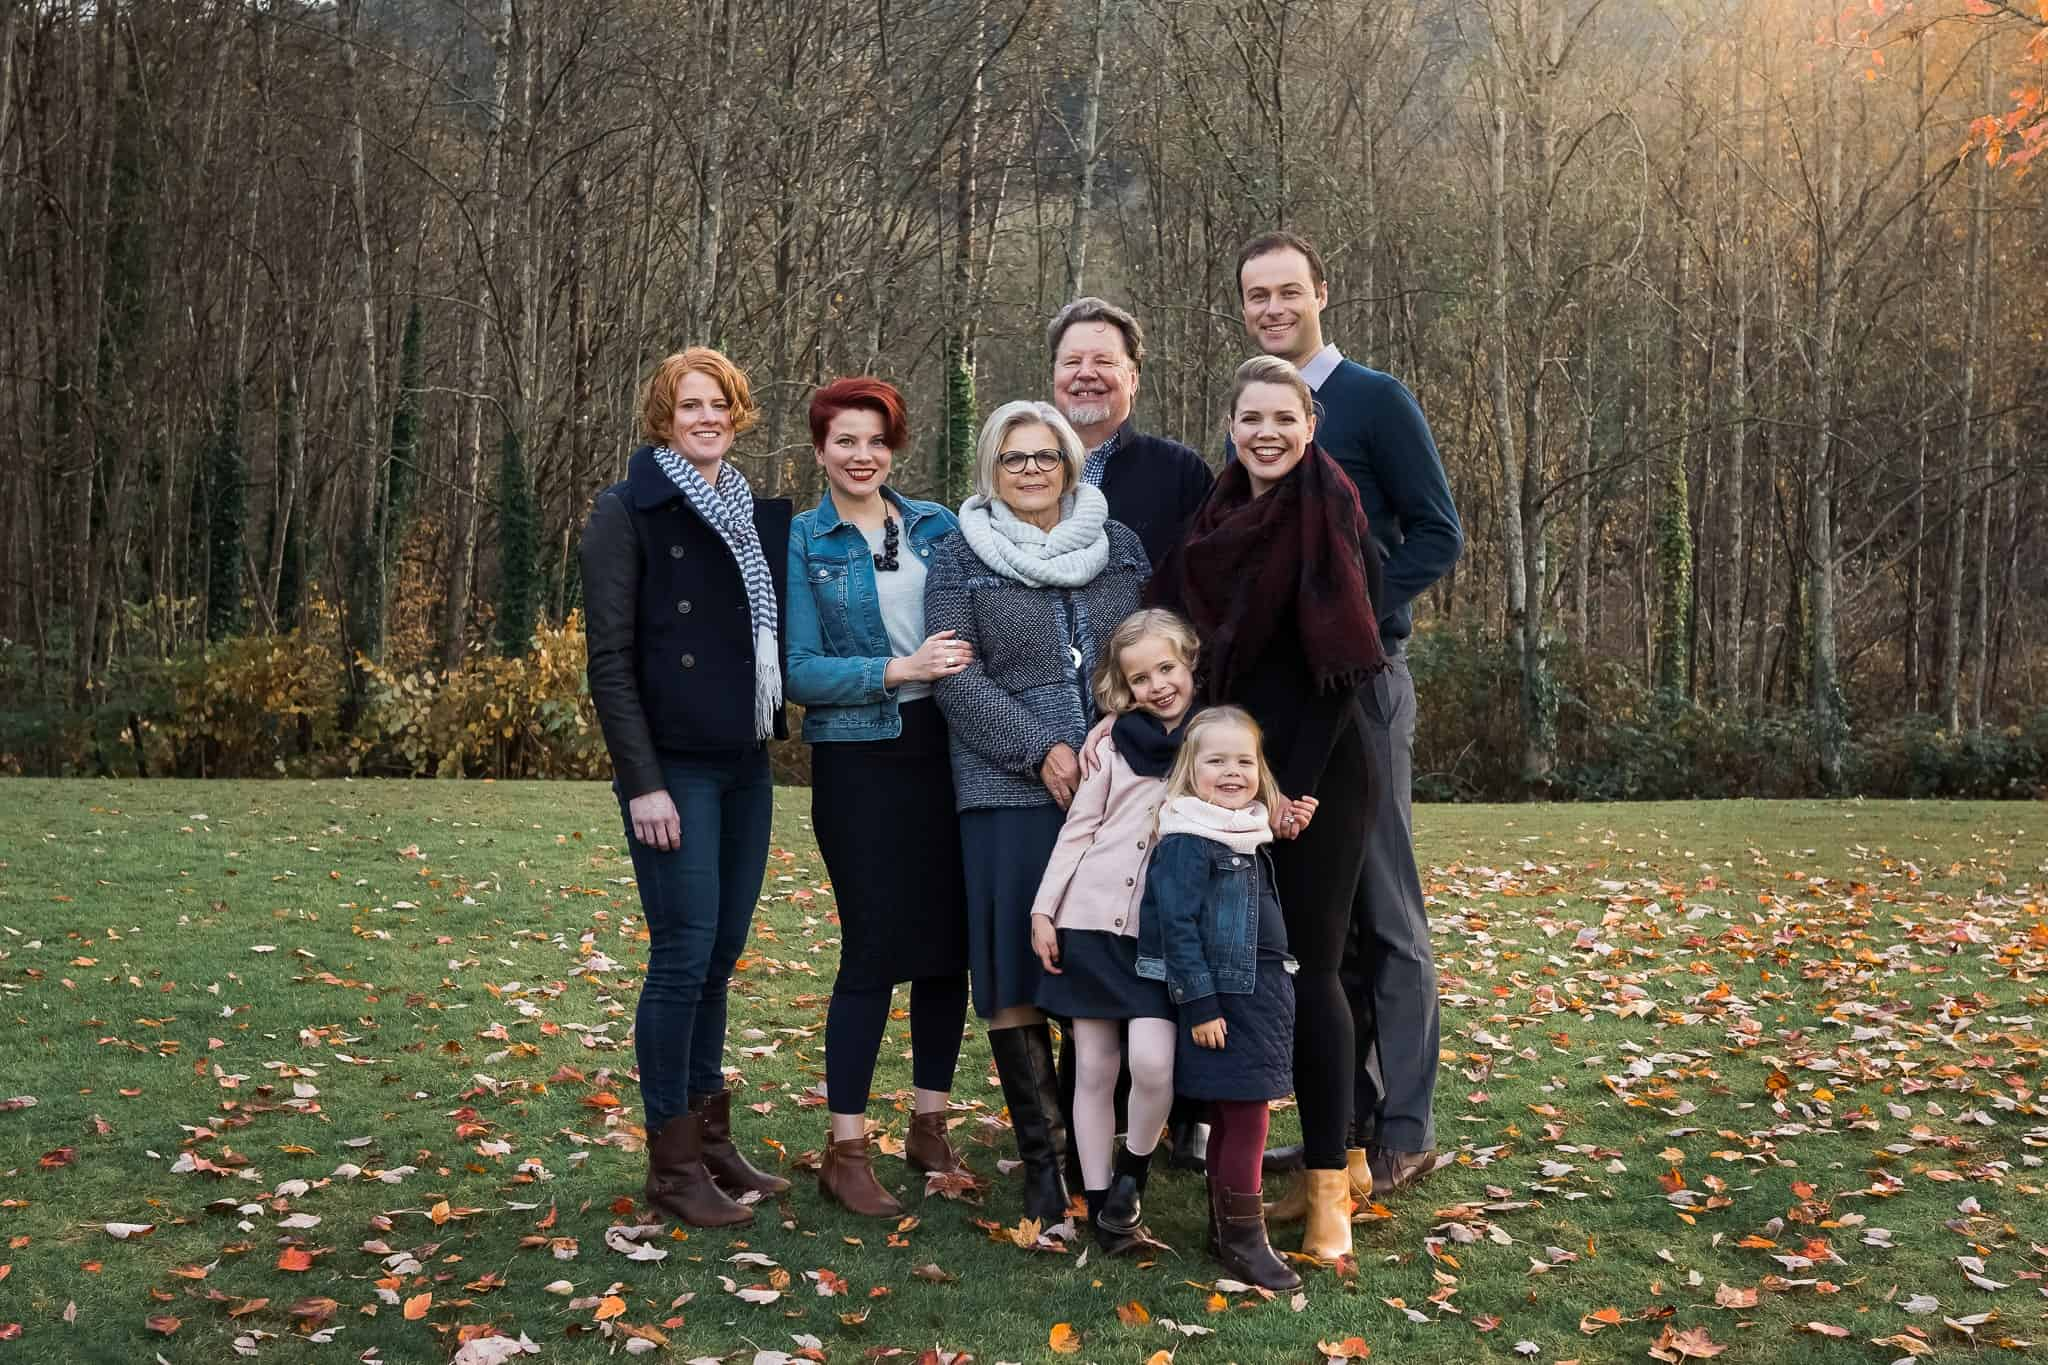 extended family photo in fall foliage